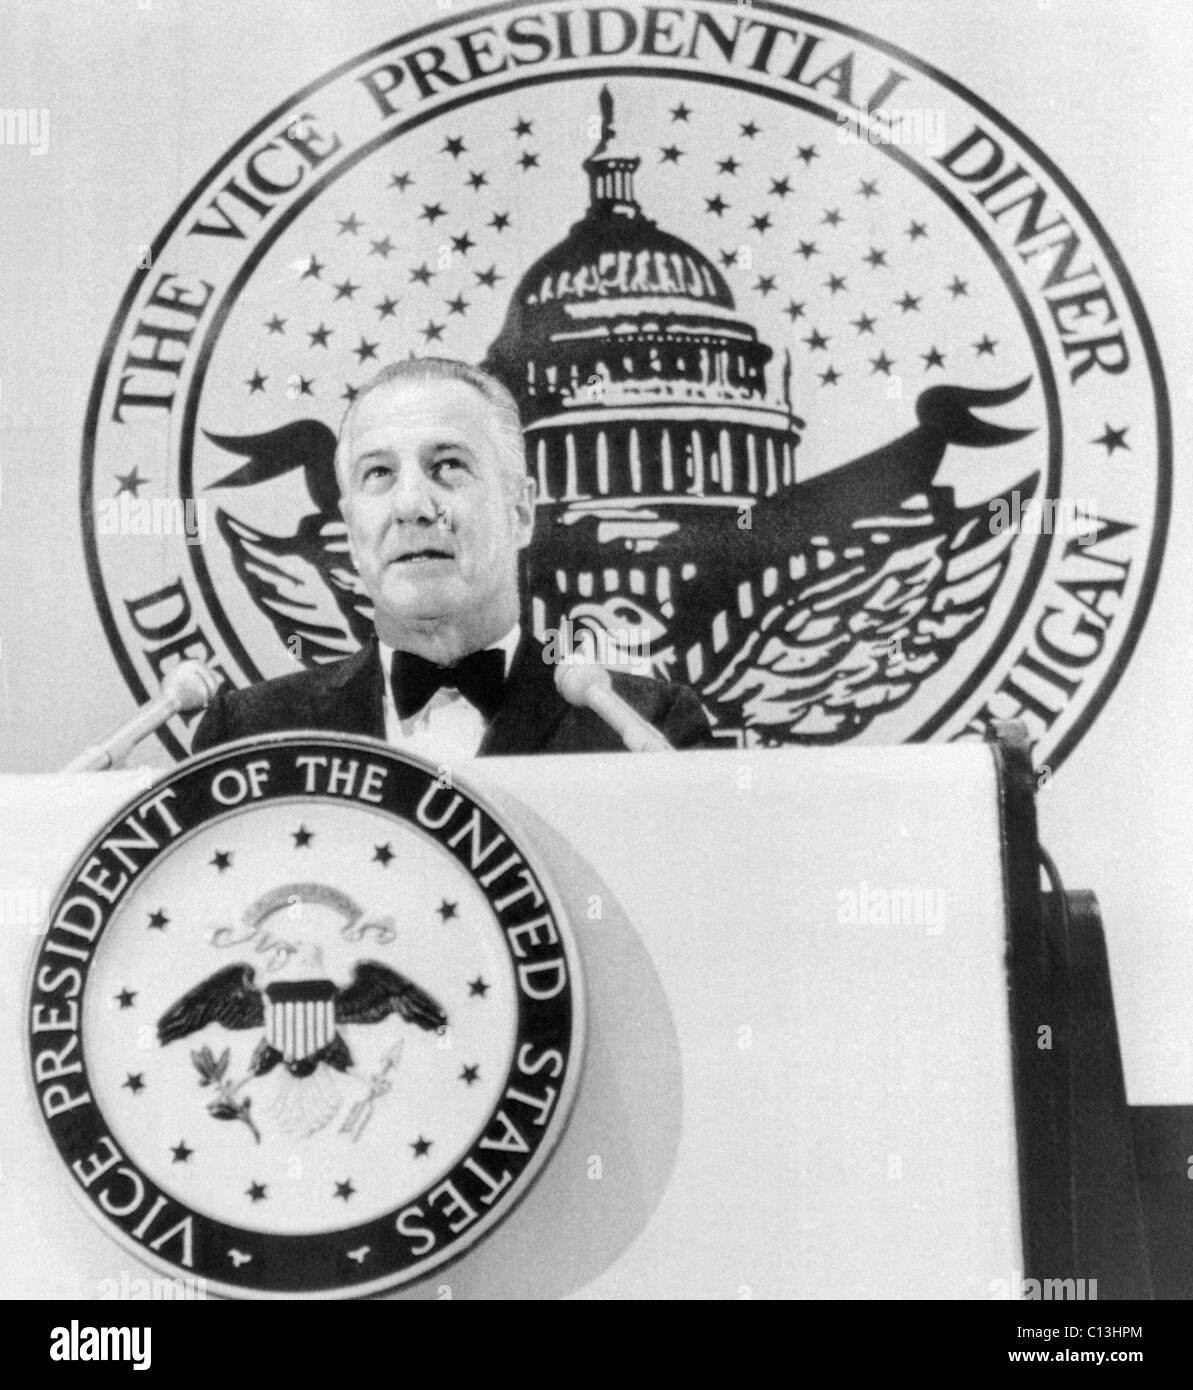 Vice President Spiro T. Agnew delivering an address at a Republican Party fund-raising dinner in Detroit, Michigan, - Stock Image